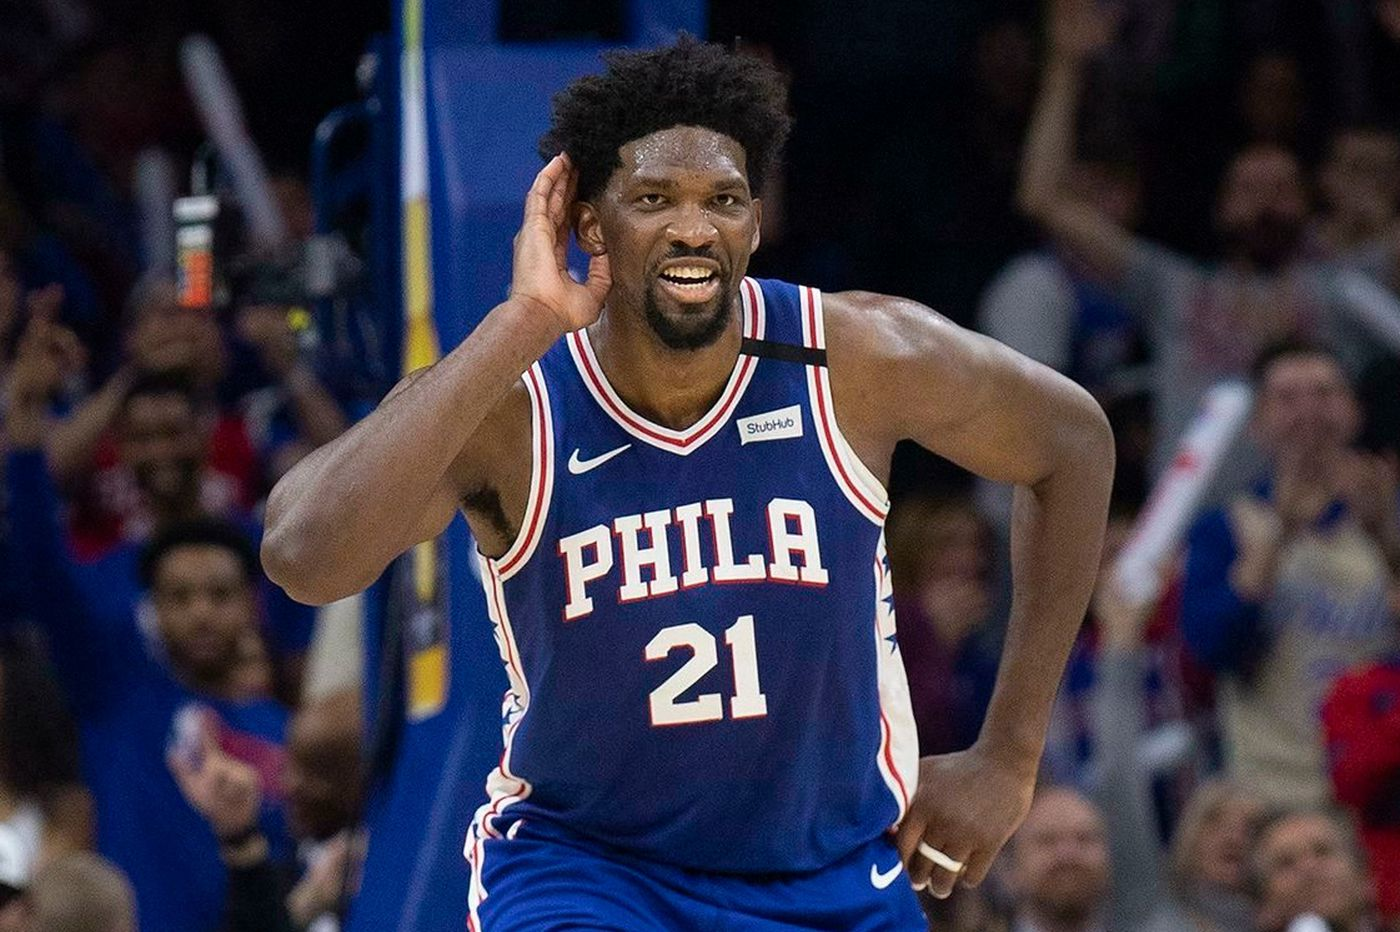 Philadelphia 76ers' Joel Embiid Named Eastern Conference Player of the Month